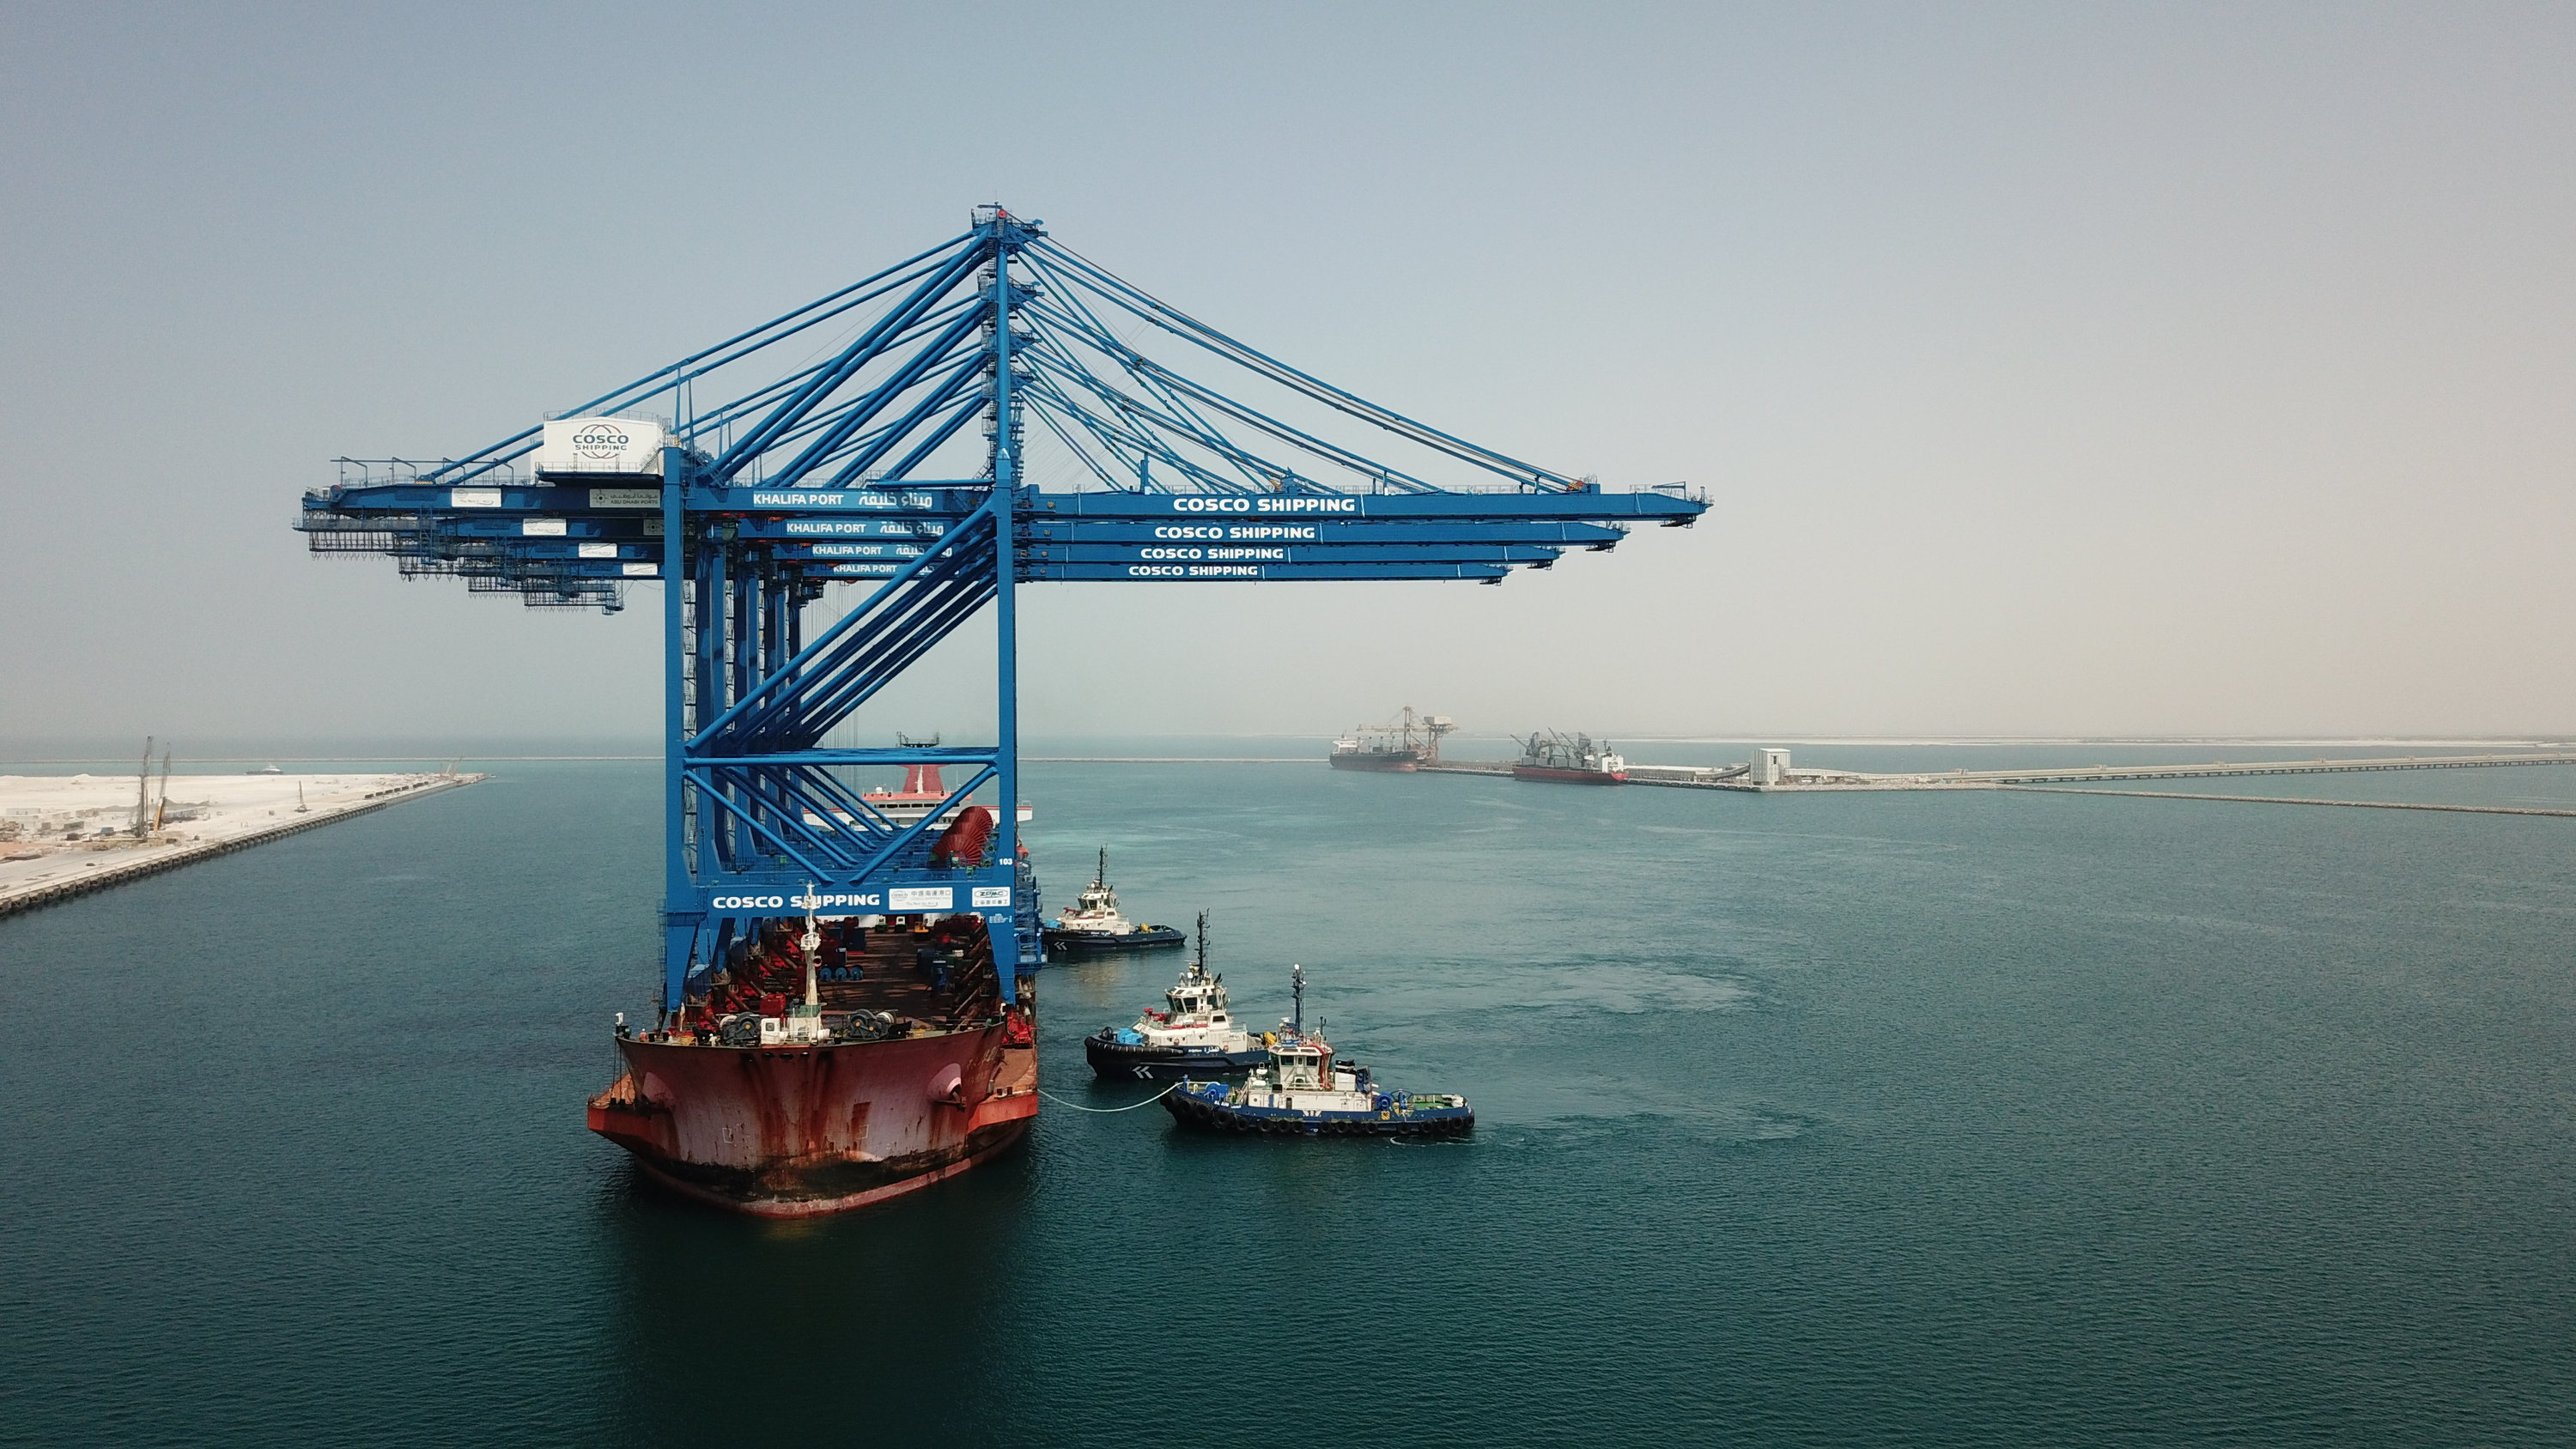 Less than a year after construction began, the first cranes have arrived